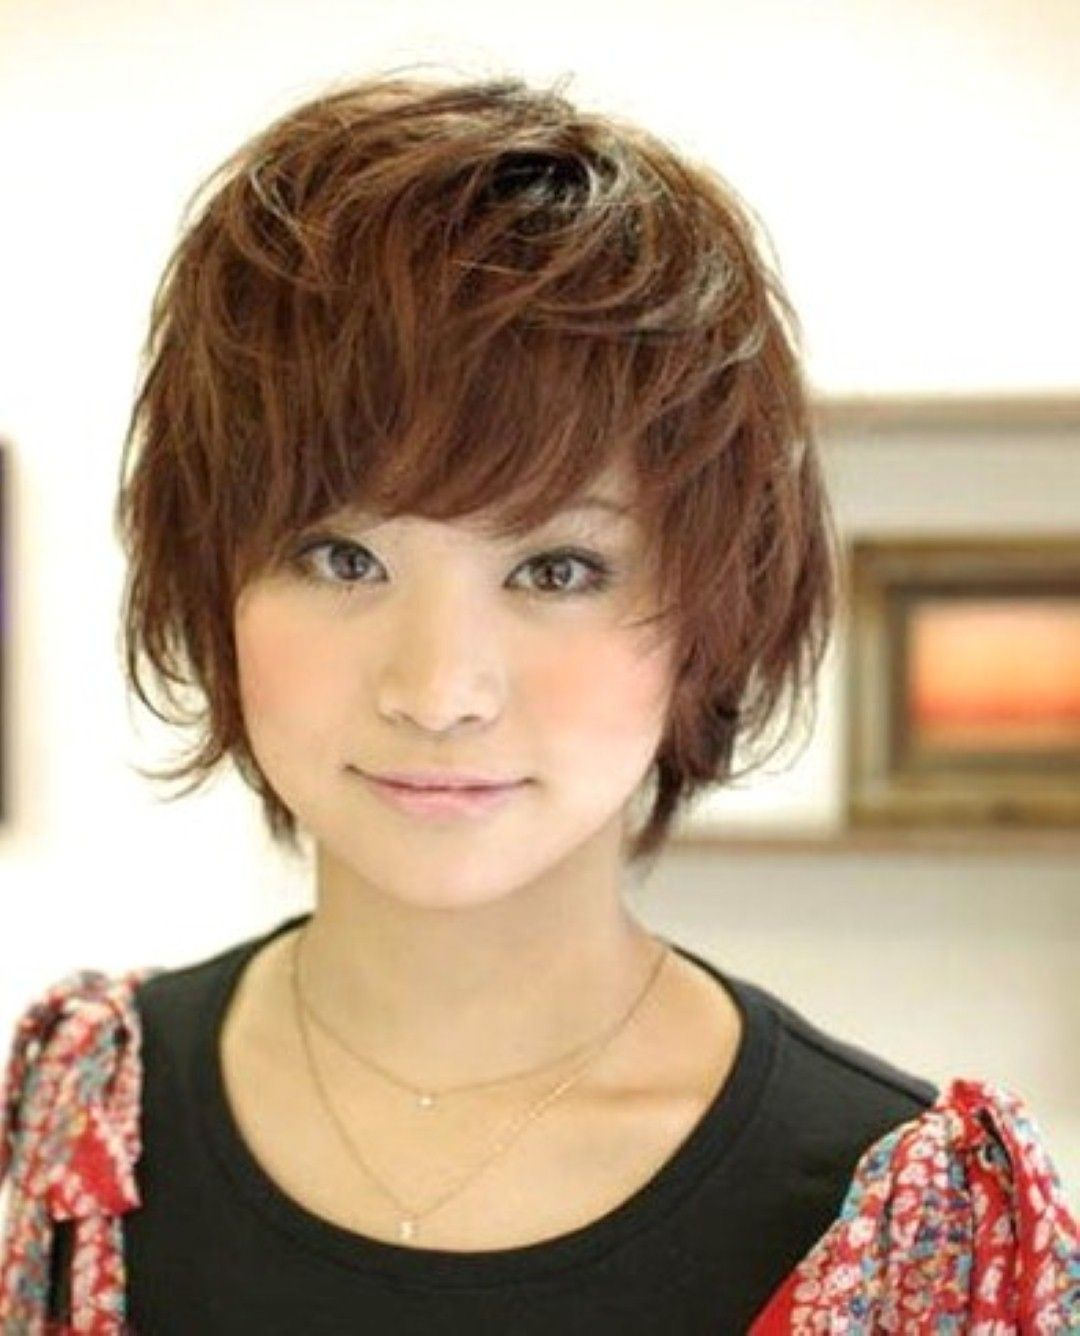 Short Haircuts For Little Girls Photo | Haircut ideas for girls ...